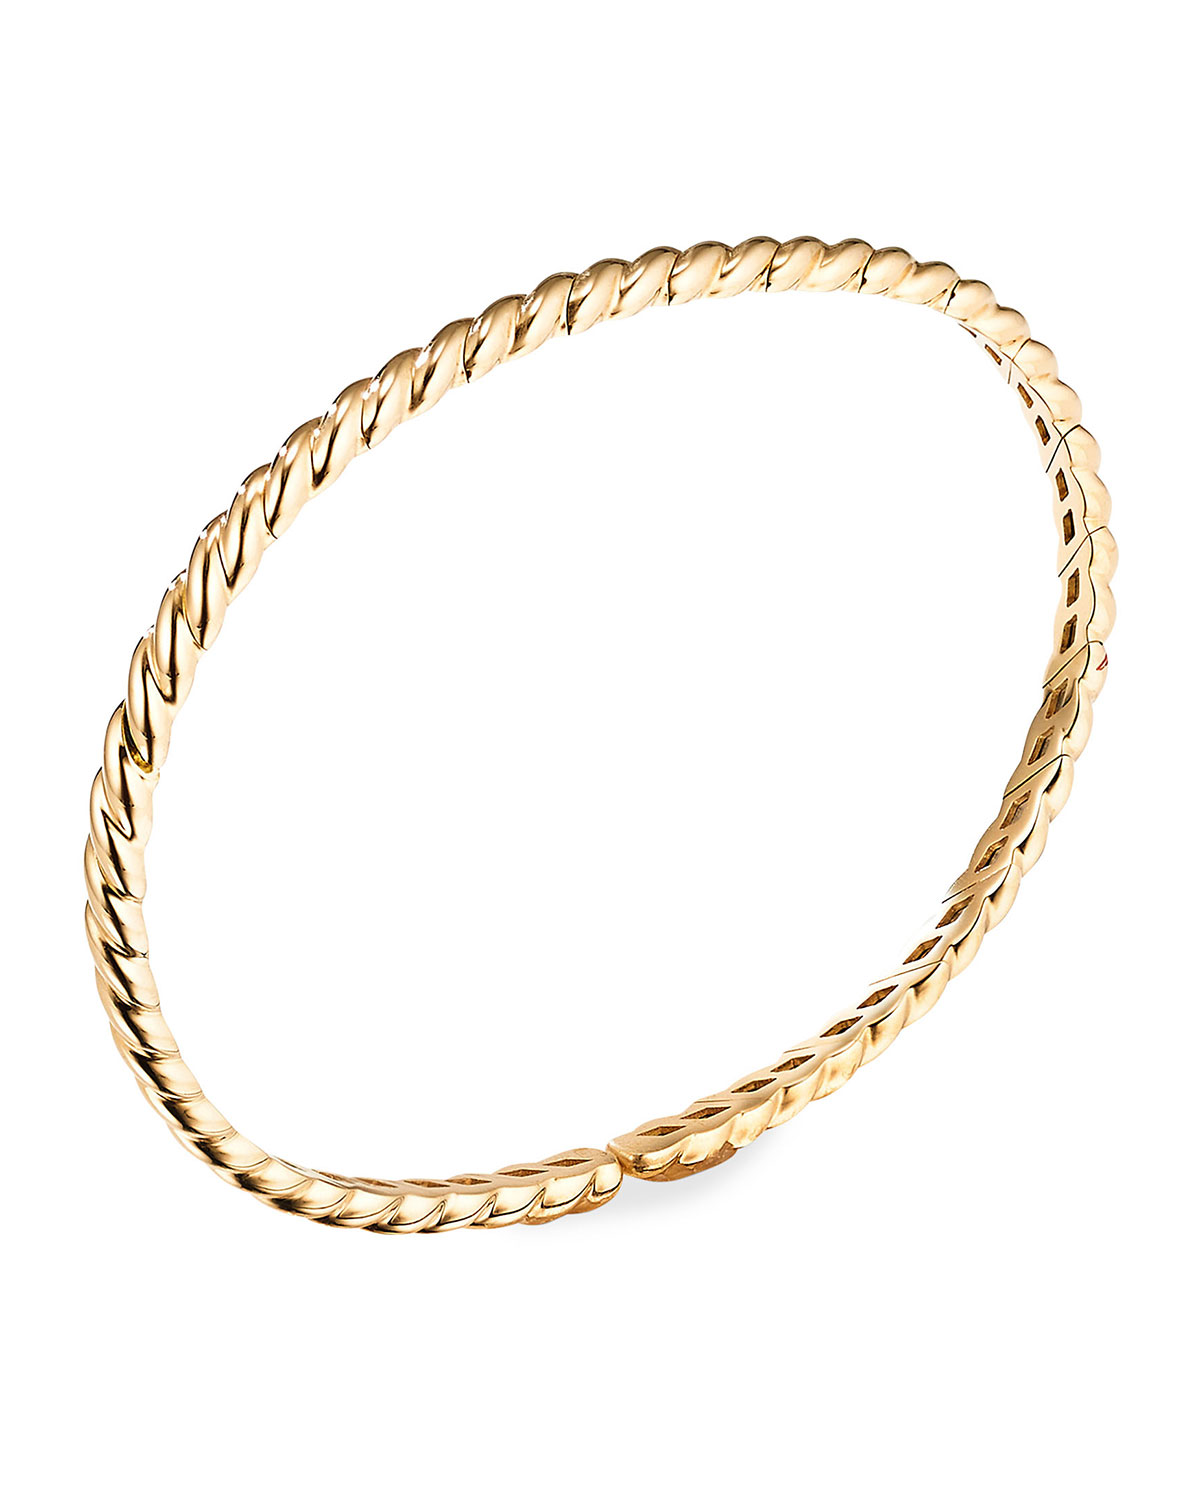 David Yurman 3.5mm Paveflex 18K Gold Cable Bracelet, Size S